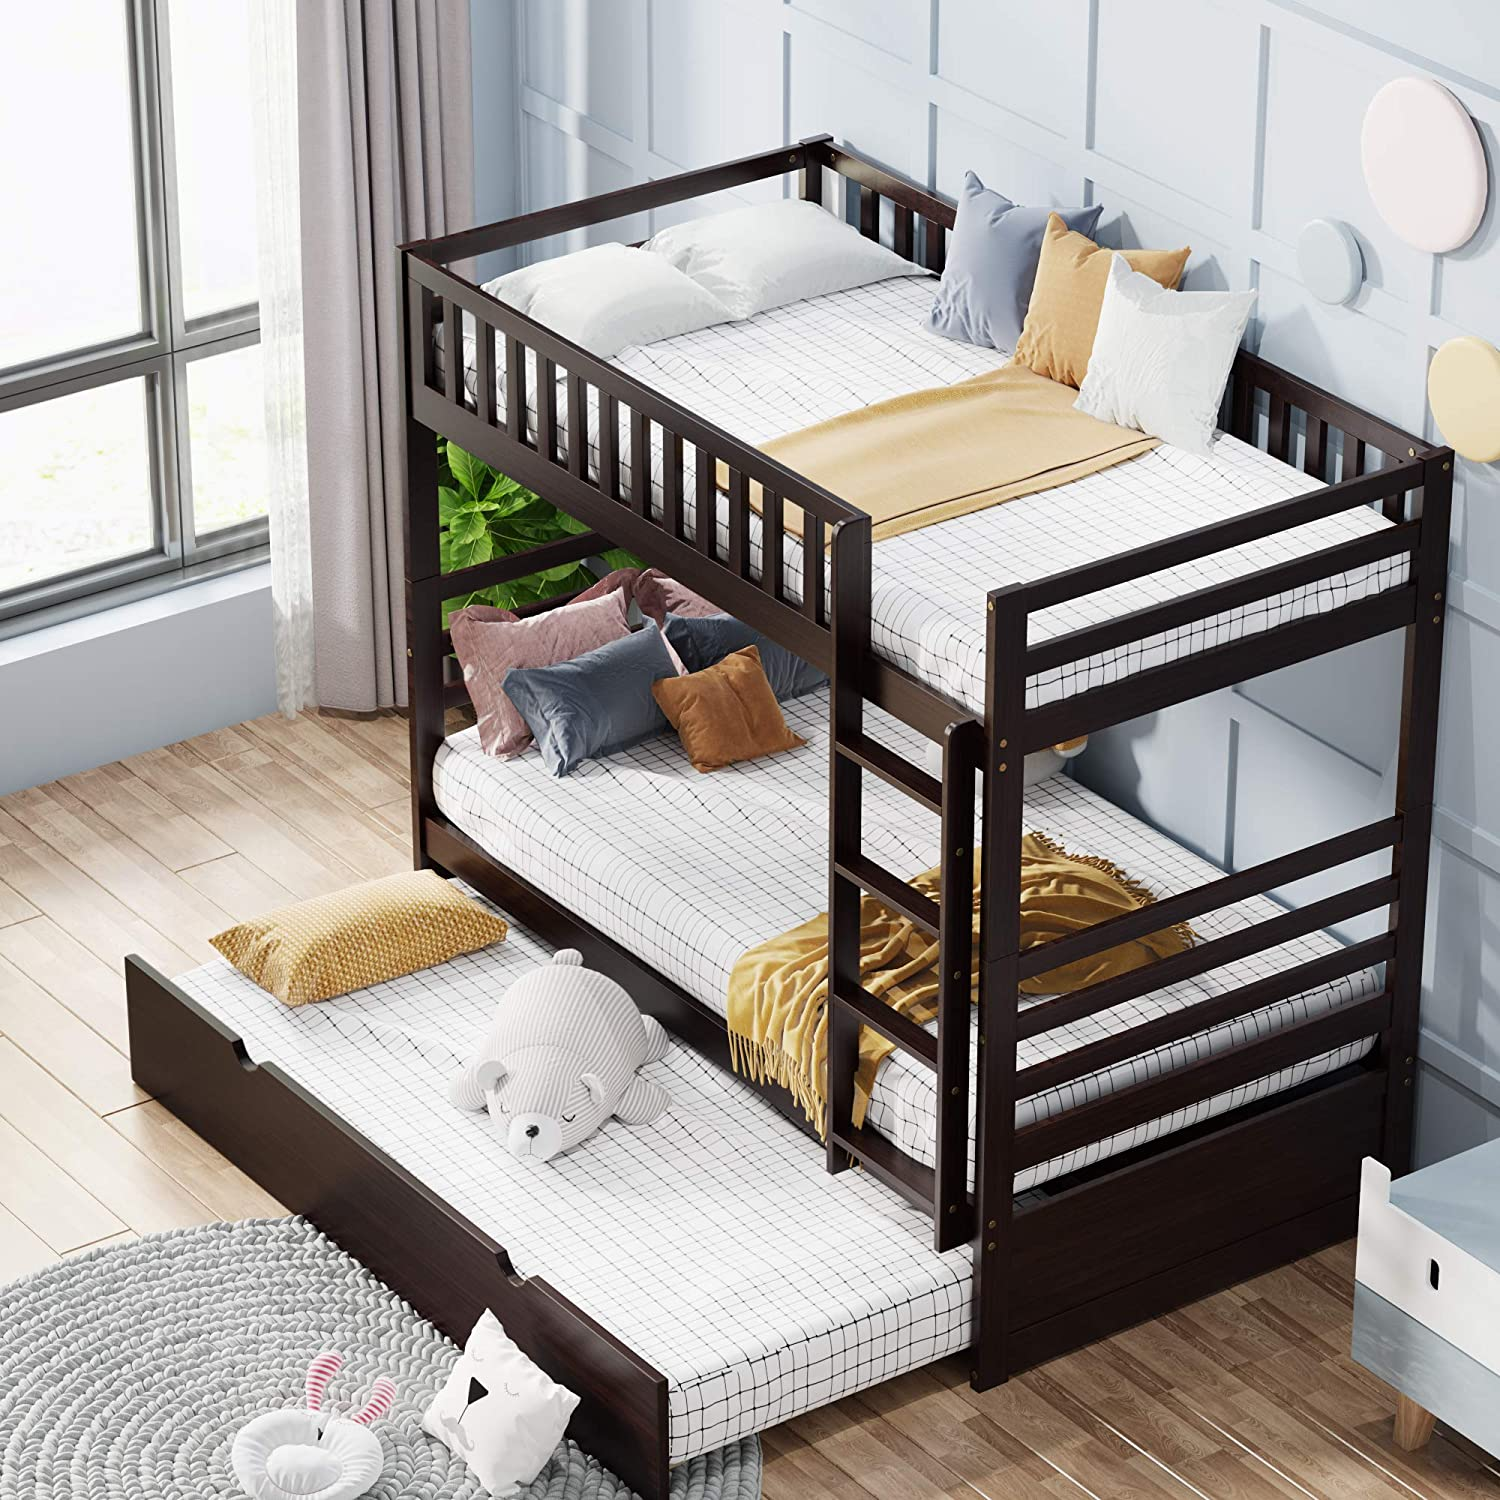 Amazon Com Merax Bunk Beds For Kids Twin Over Bunk Bed With Trundle Solid Wood Twin Trundle Beds With Ladder And Guardrails For Kids Espresso Furniture Decor